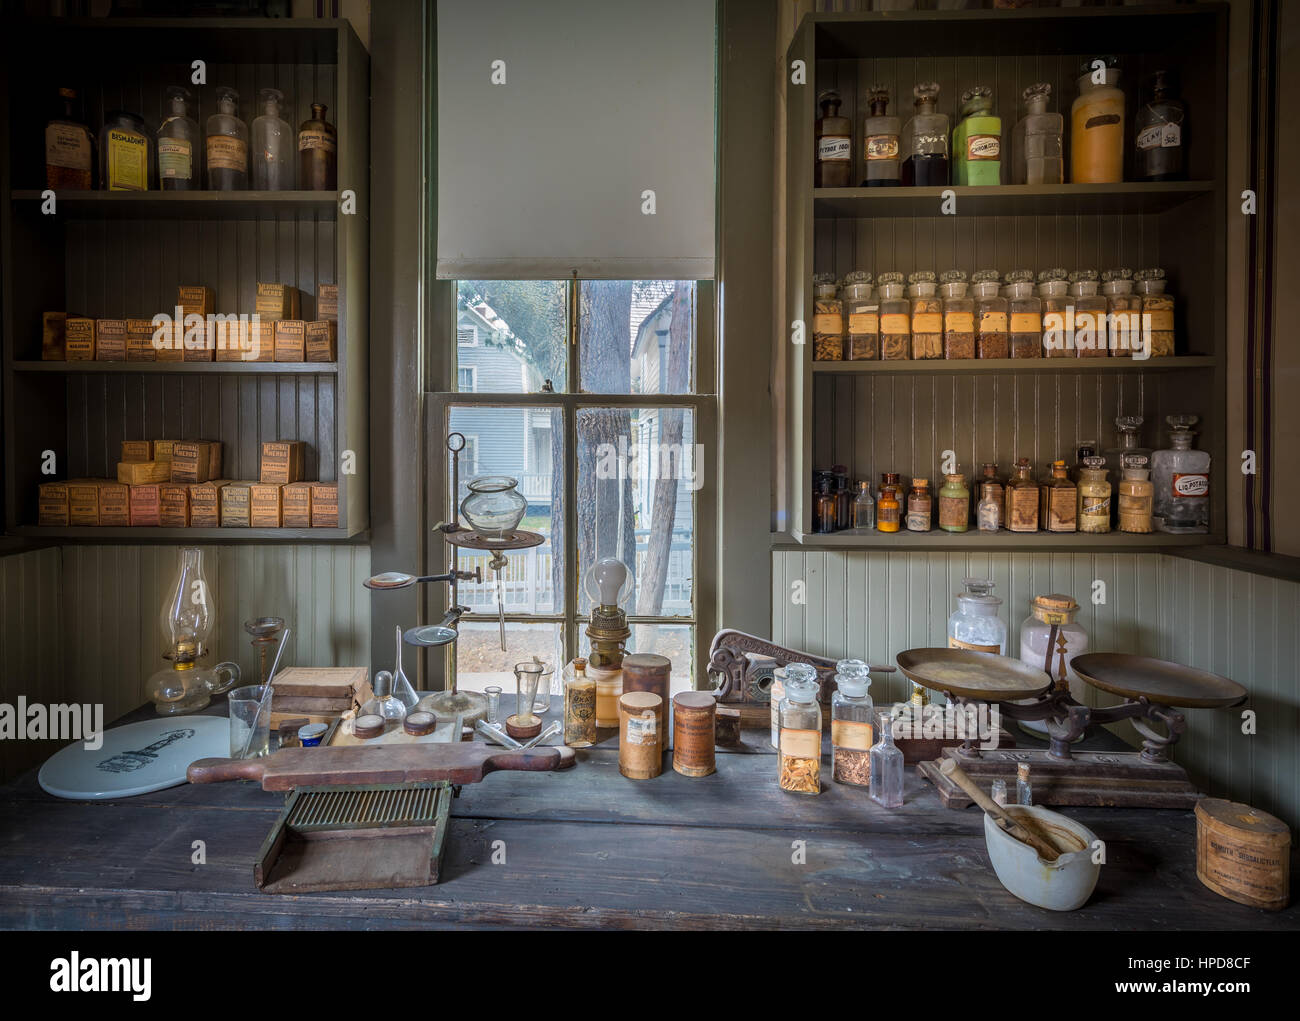 Vintage pharmacy in Dallas, Texas.  This is where the pharmacist prepared the medicines. Stock Photo